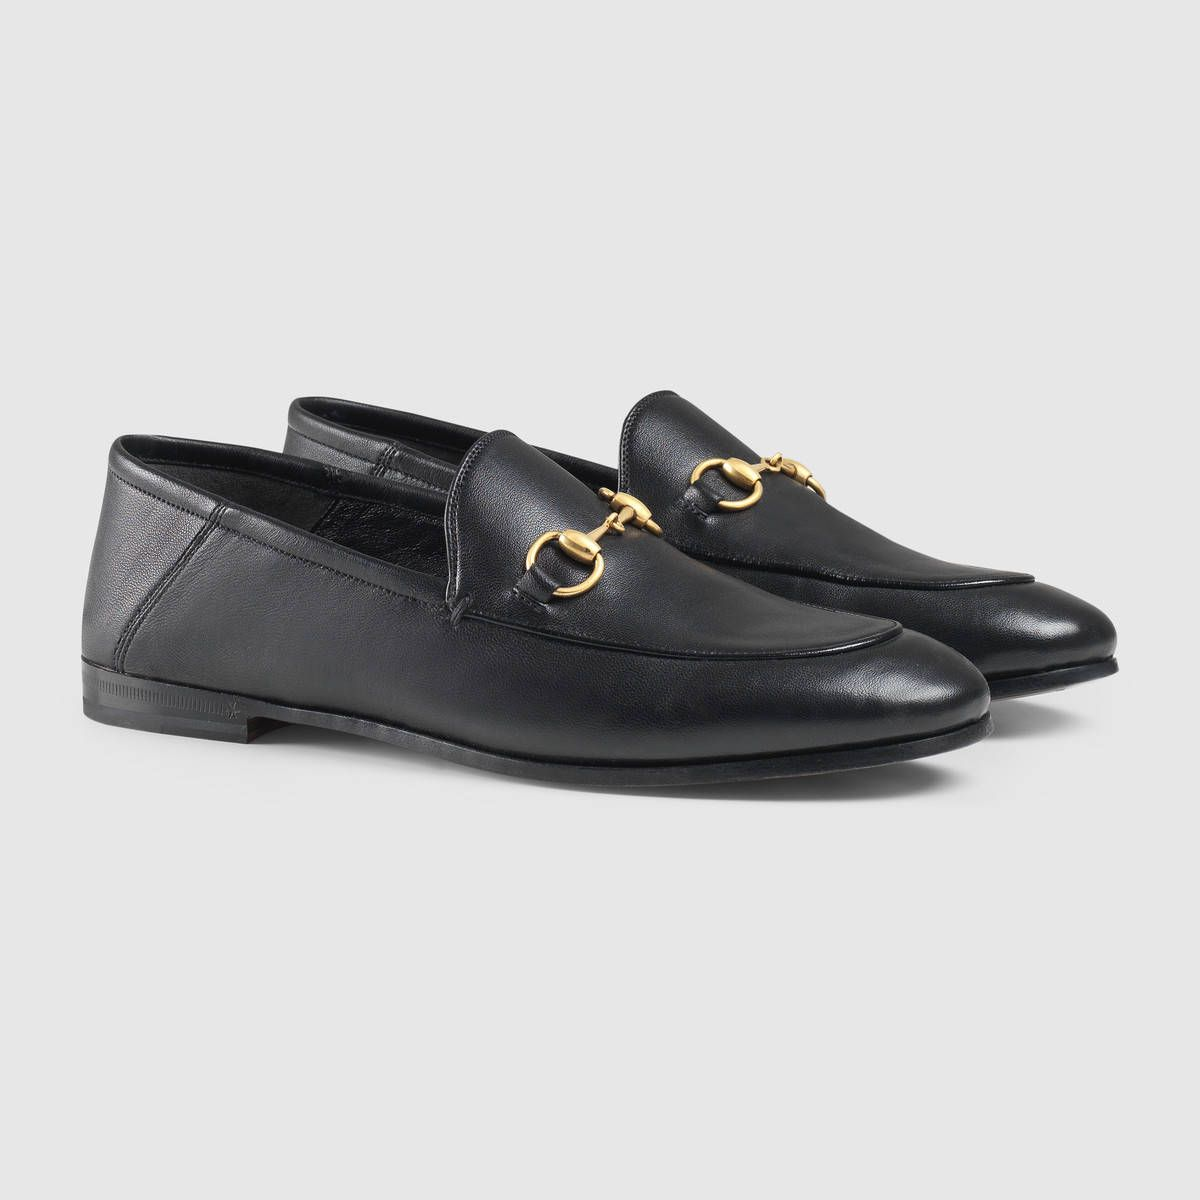 13b5c2890 Leather Horsebit loafer | Fall Shoes/Accessories | Gucci brixton ...